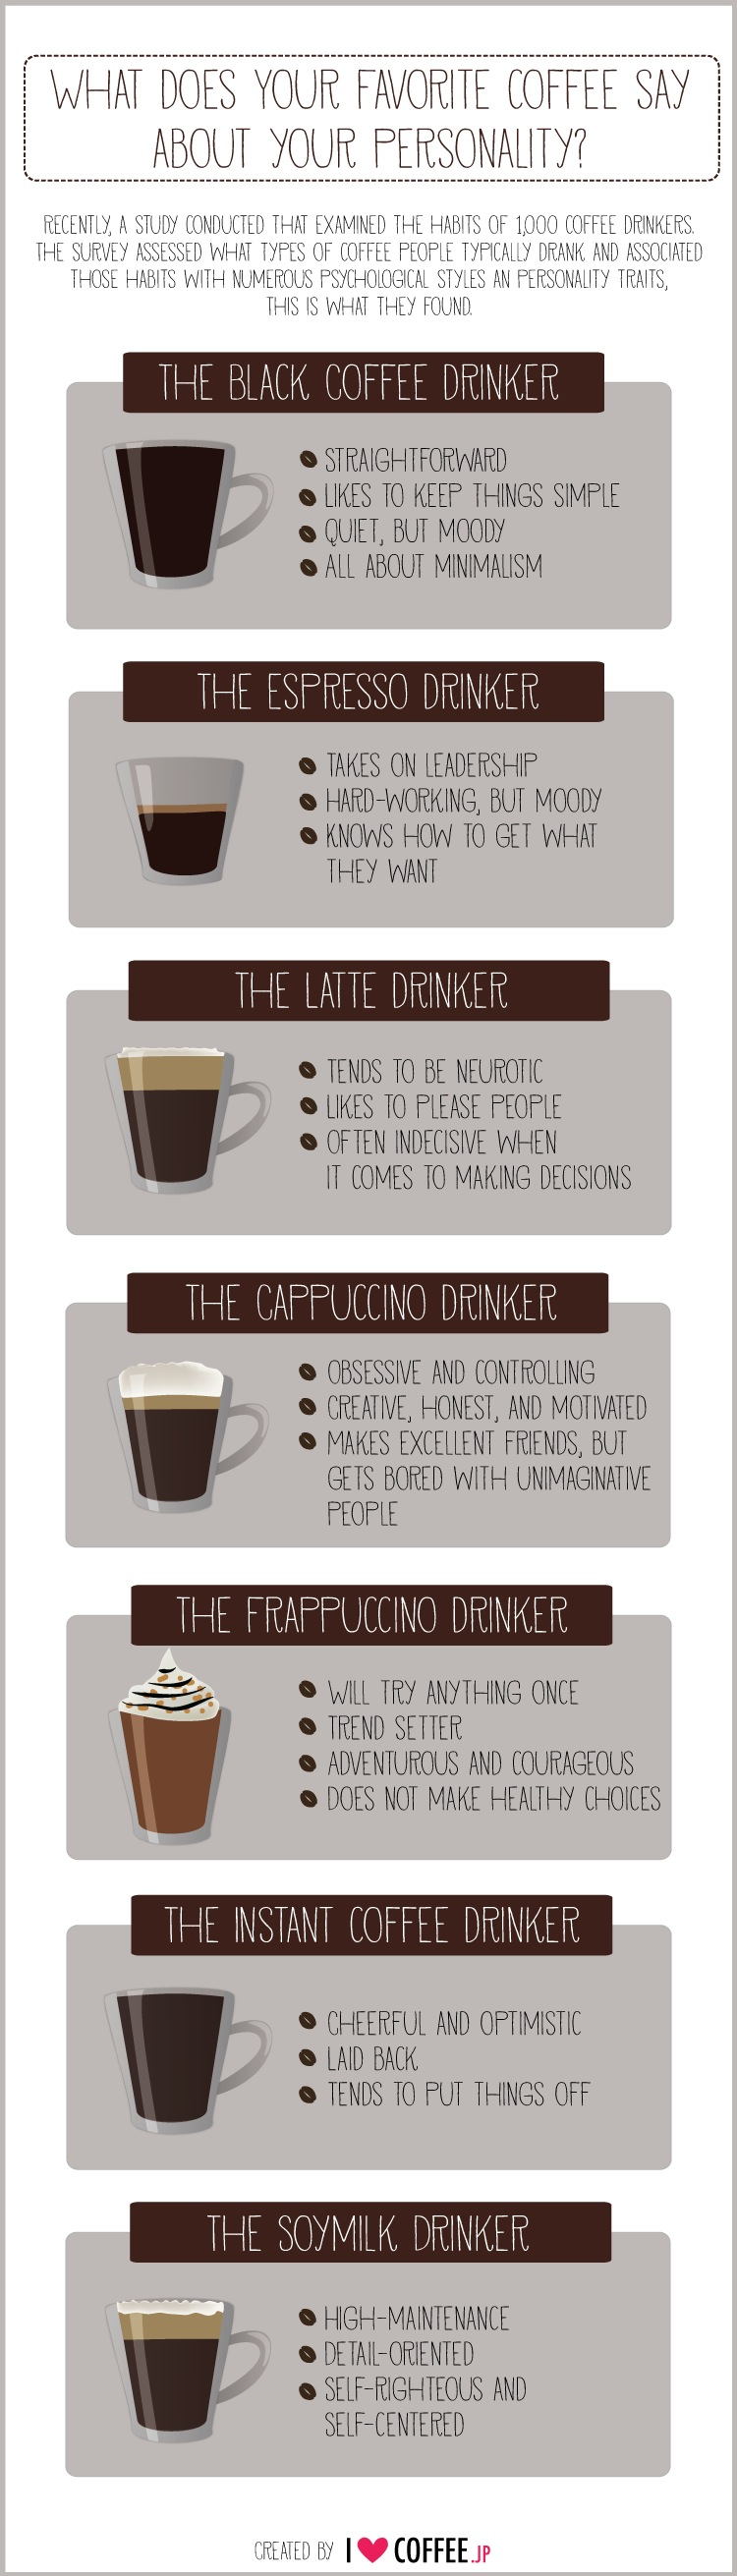 Coffee Infographic: Coffee Personality